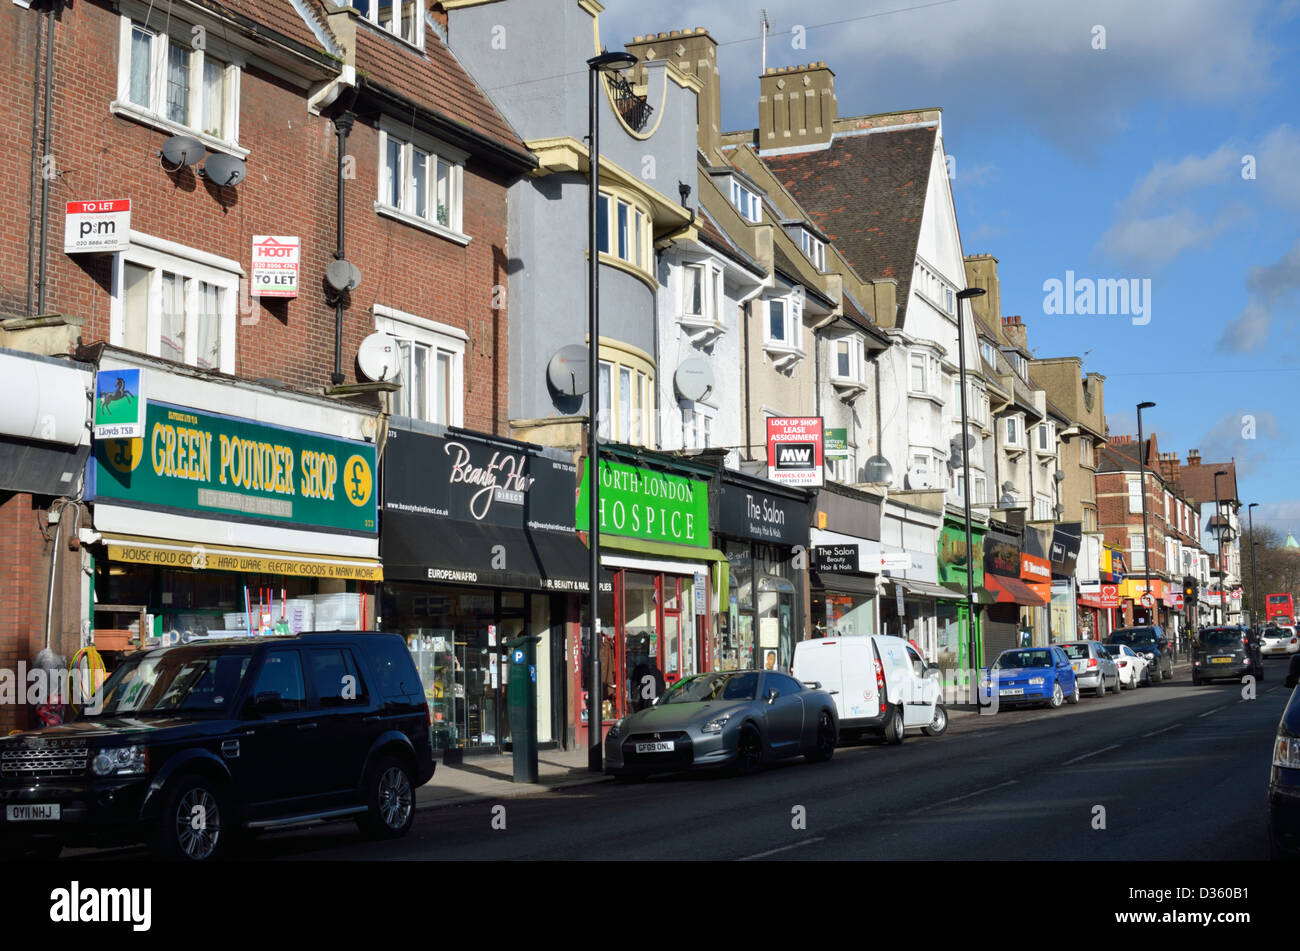 palmers green town centre london uk stock photo. Black Bedroom Furniture Sets. Home Design Ideas